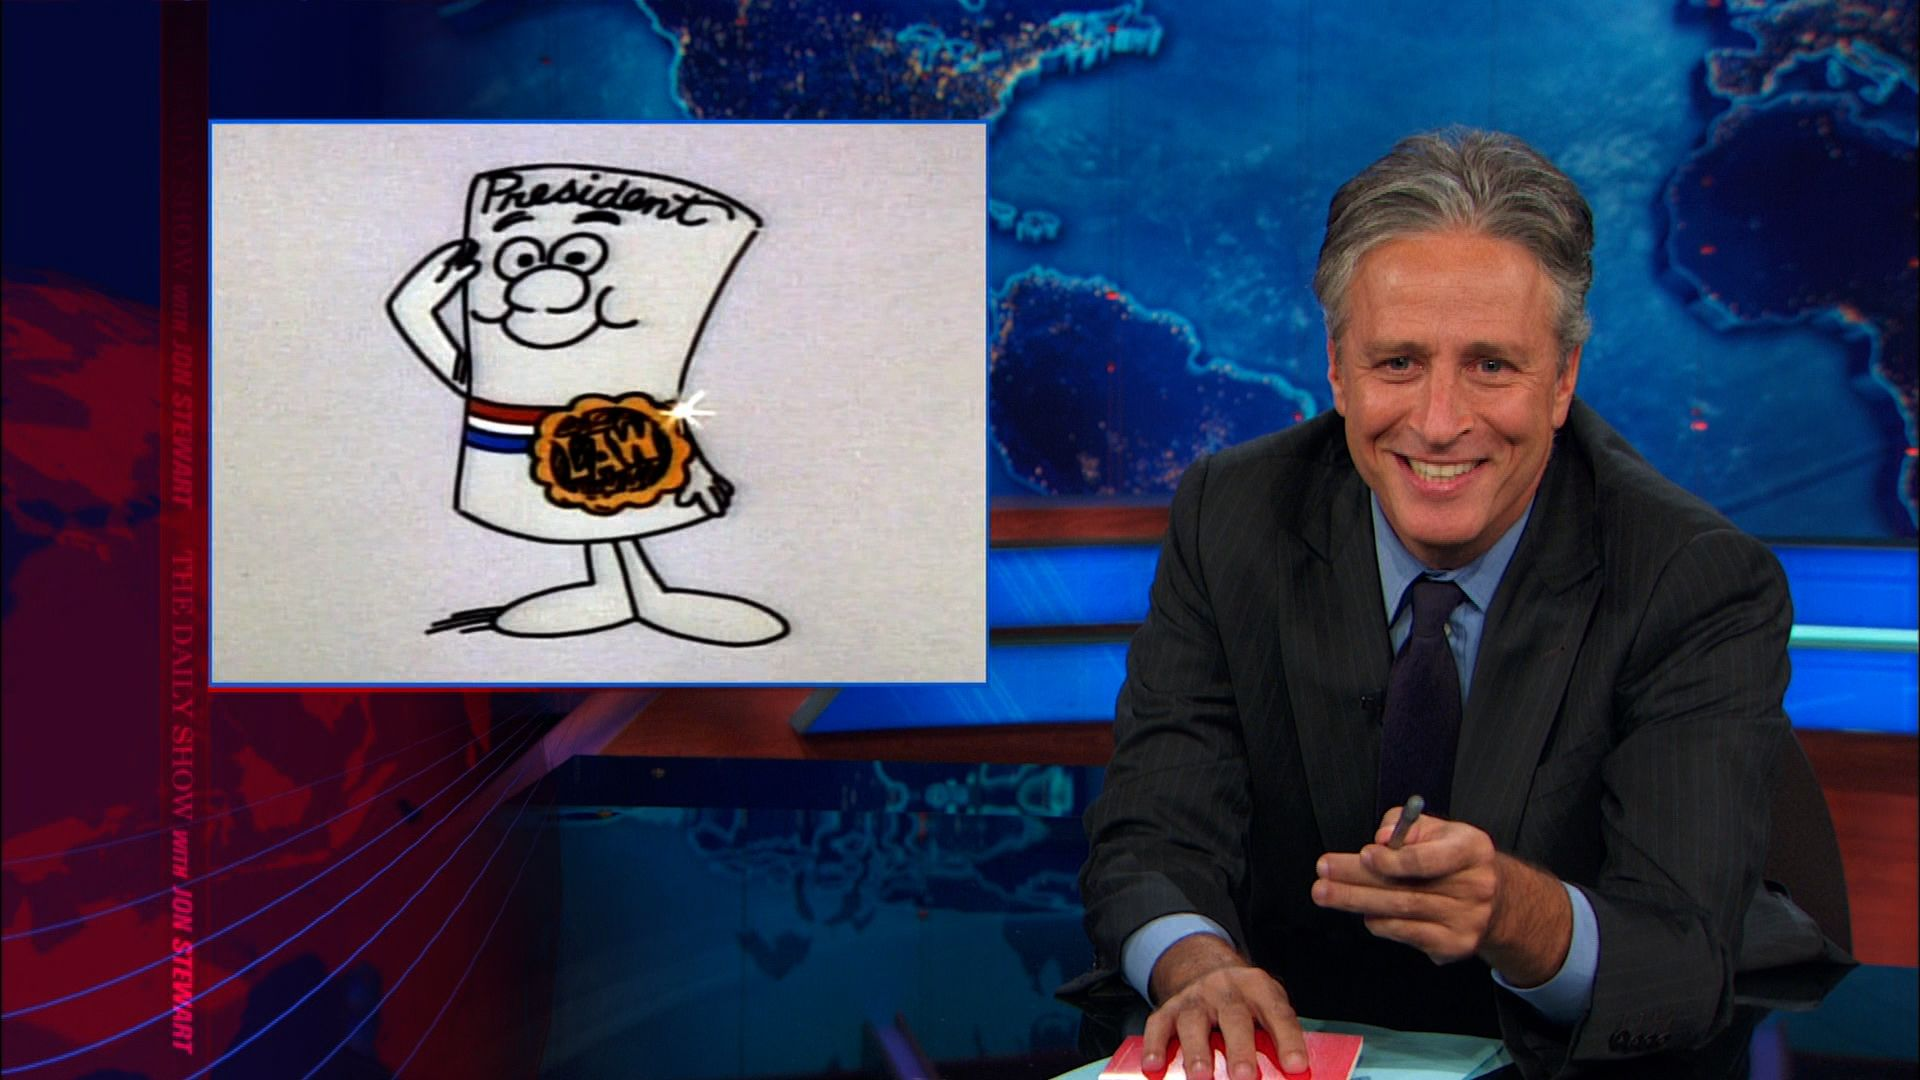 The Best of The War On Christmas - The Daily Show with Jon Stewart ...